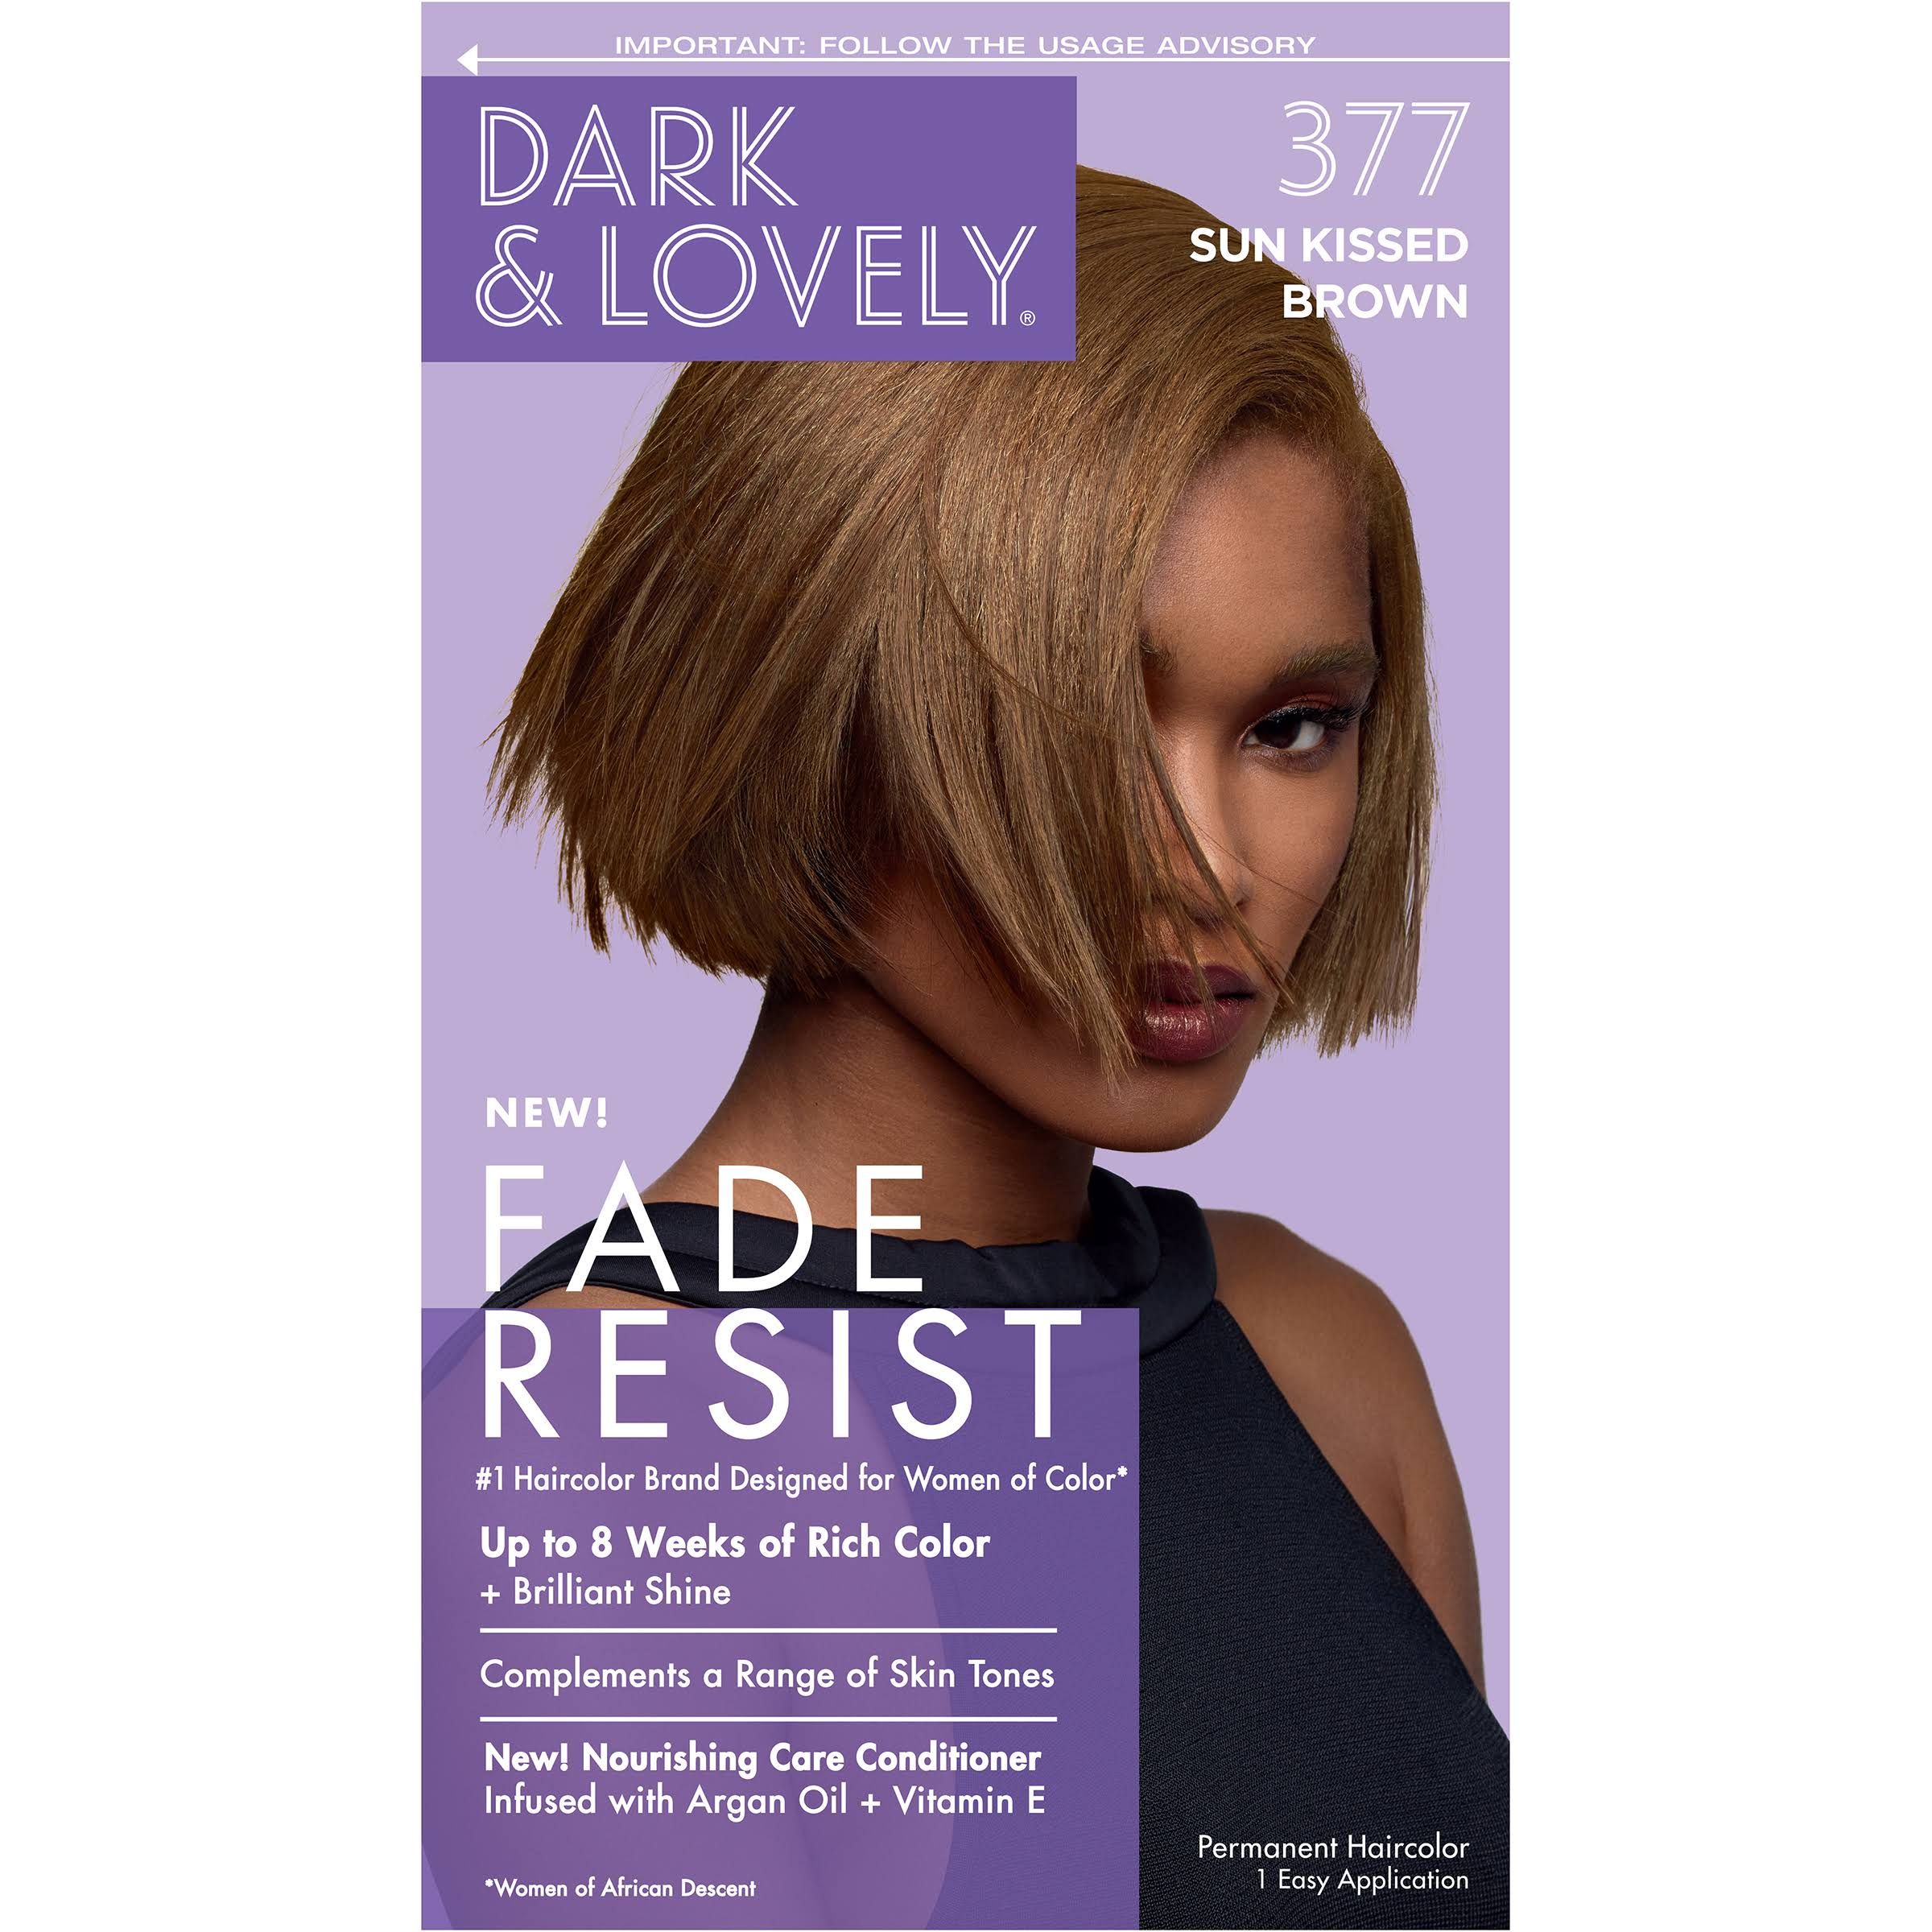 SoftSheen-Carson Dark and Lovely Fade Resist Rich Conditioning Hair Color - Sun Kissed Brown